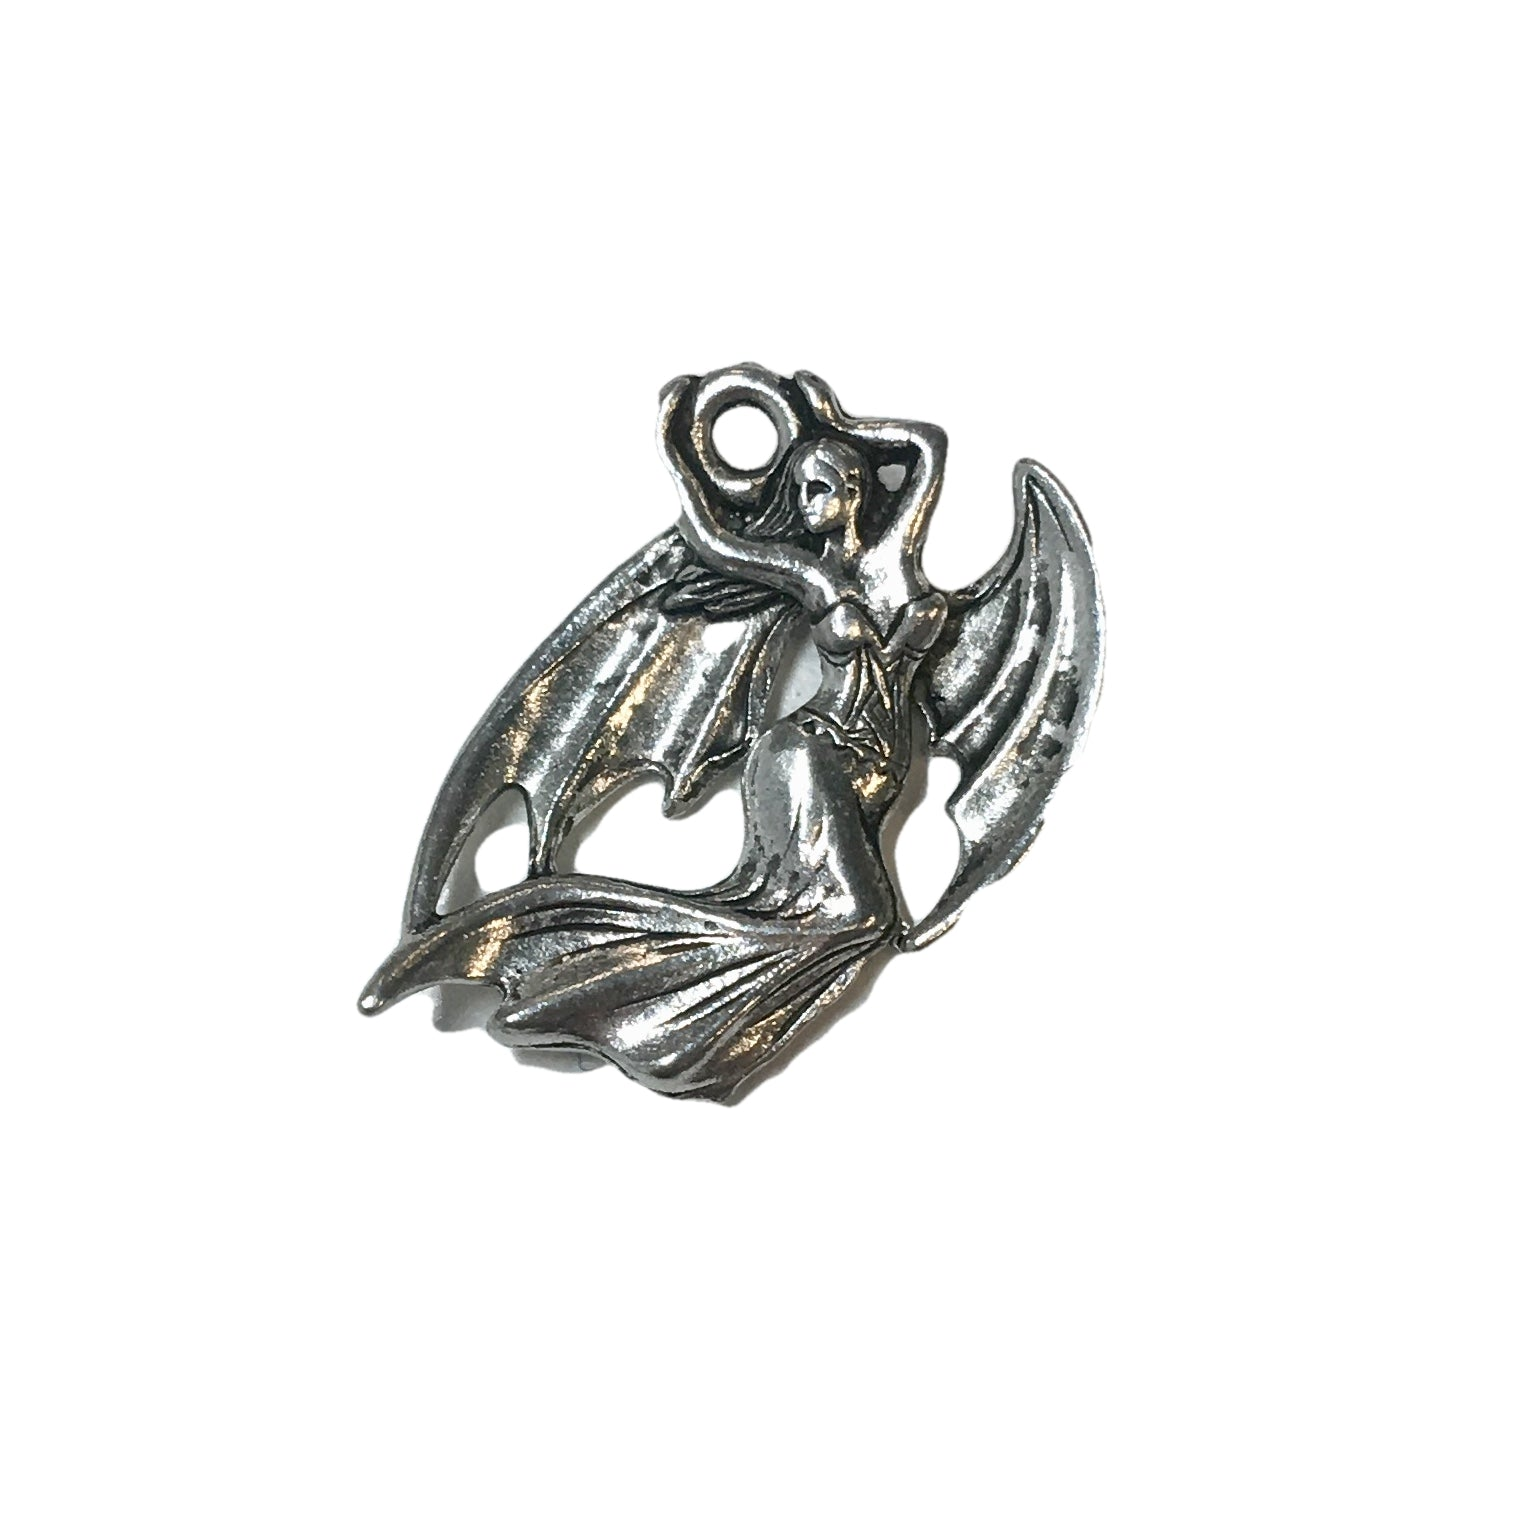 Dragon Woman Charms - Qty 5 - Lead Free Pewter Silver - American Made